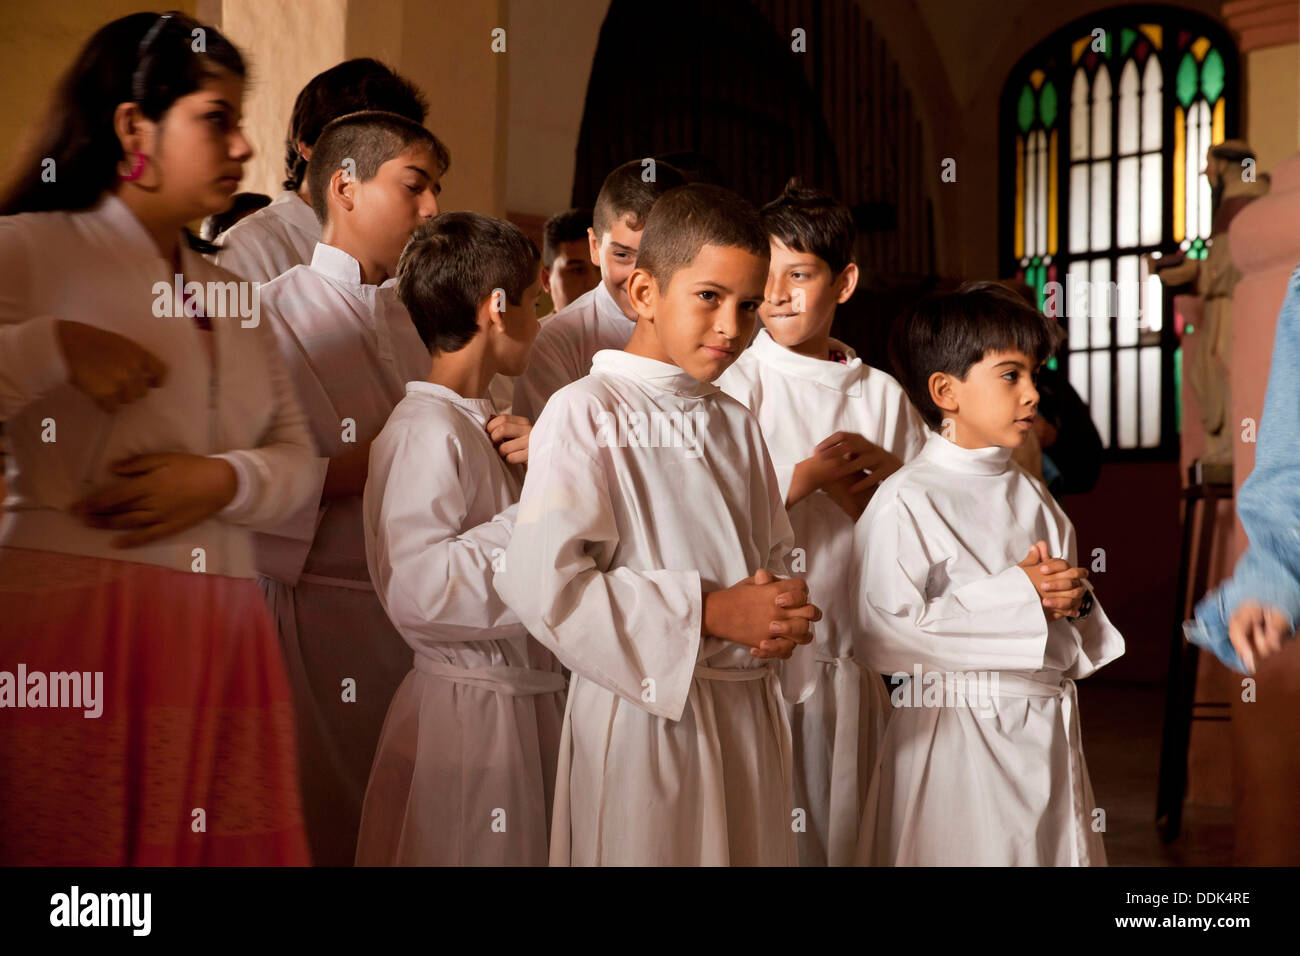 young Altar server during the Mass at the church Iglesia de Nuestra Senora de La Merced in Camagüey, Cuba, Caribbean, - Stock Image